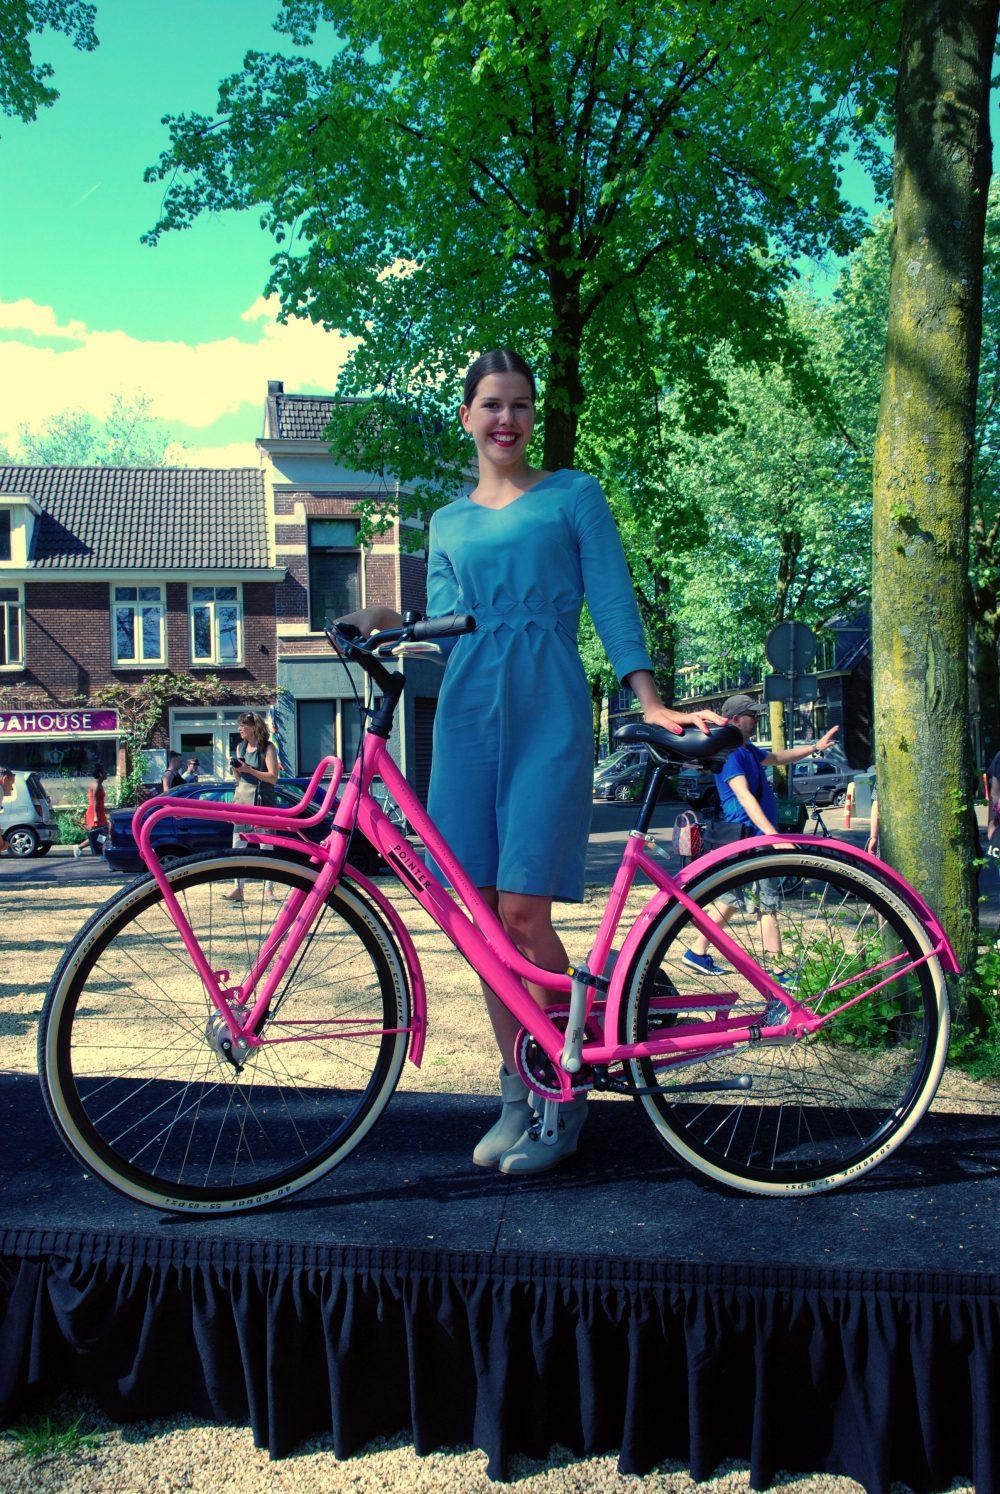 Chris Meijers Collectie - Giro Fashion Ride